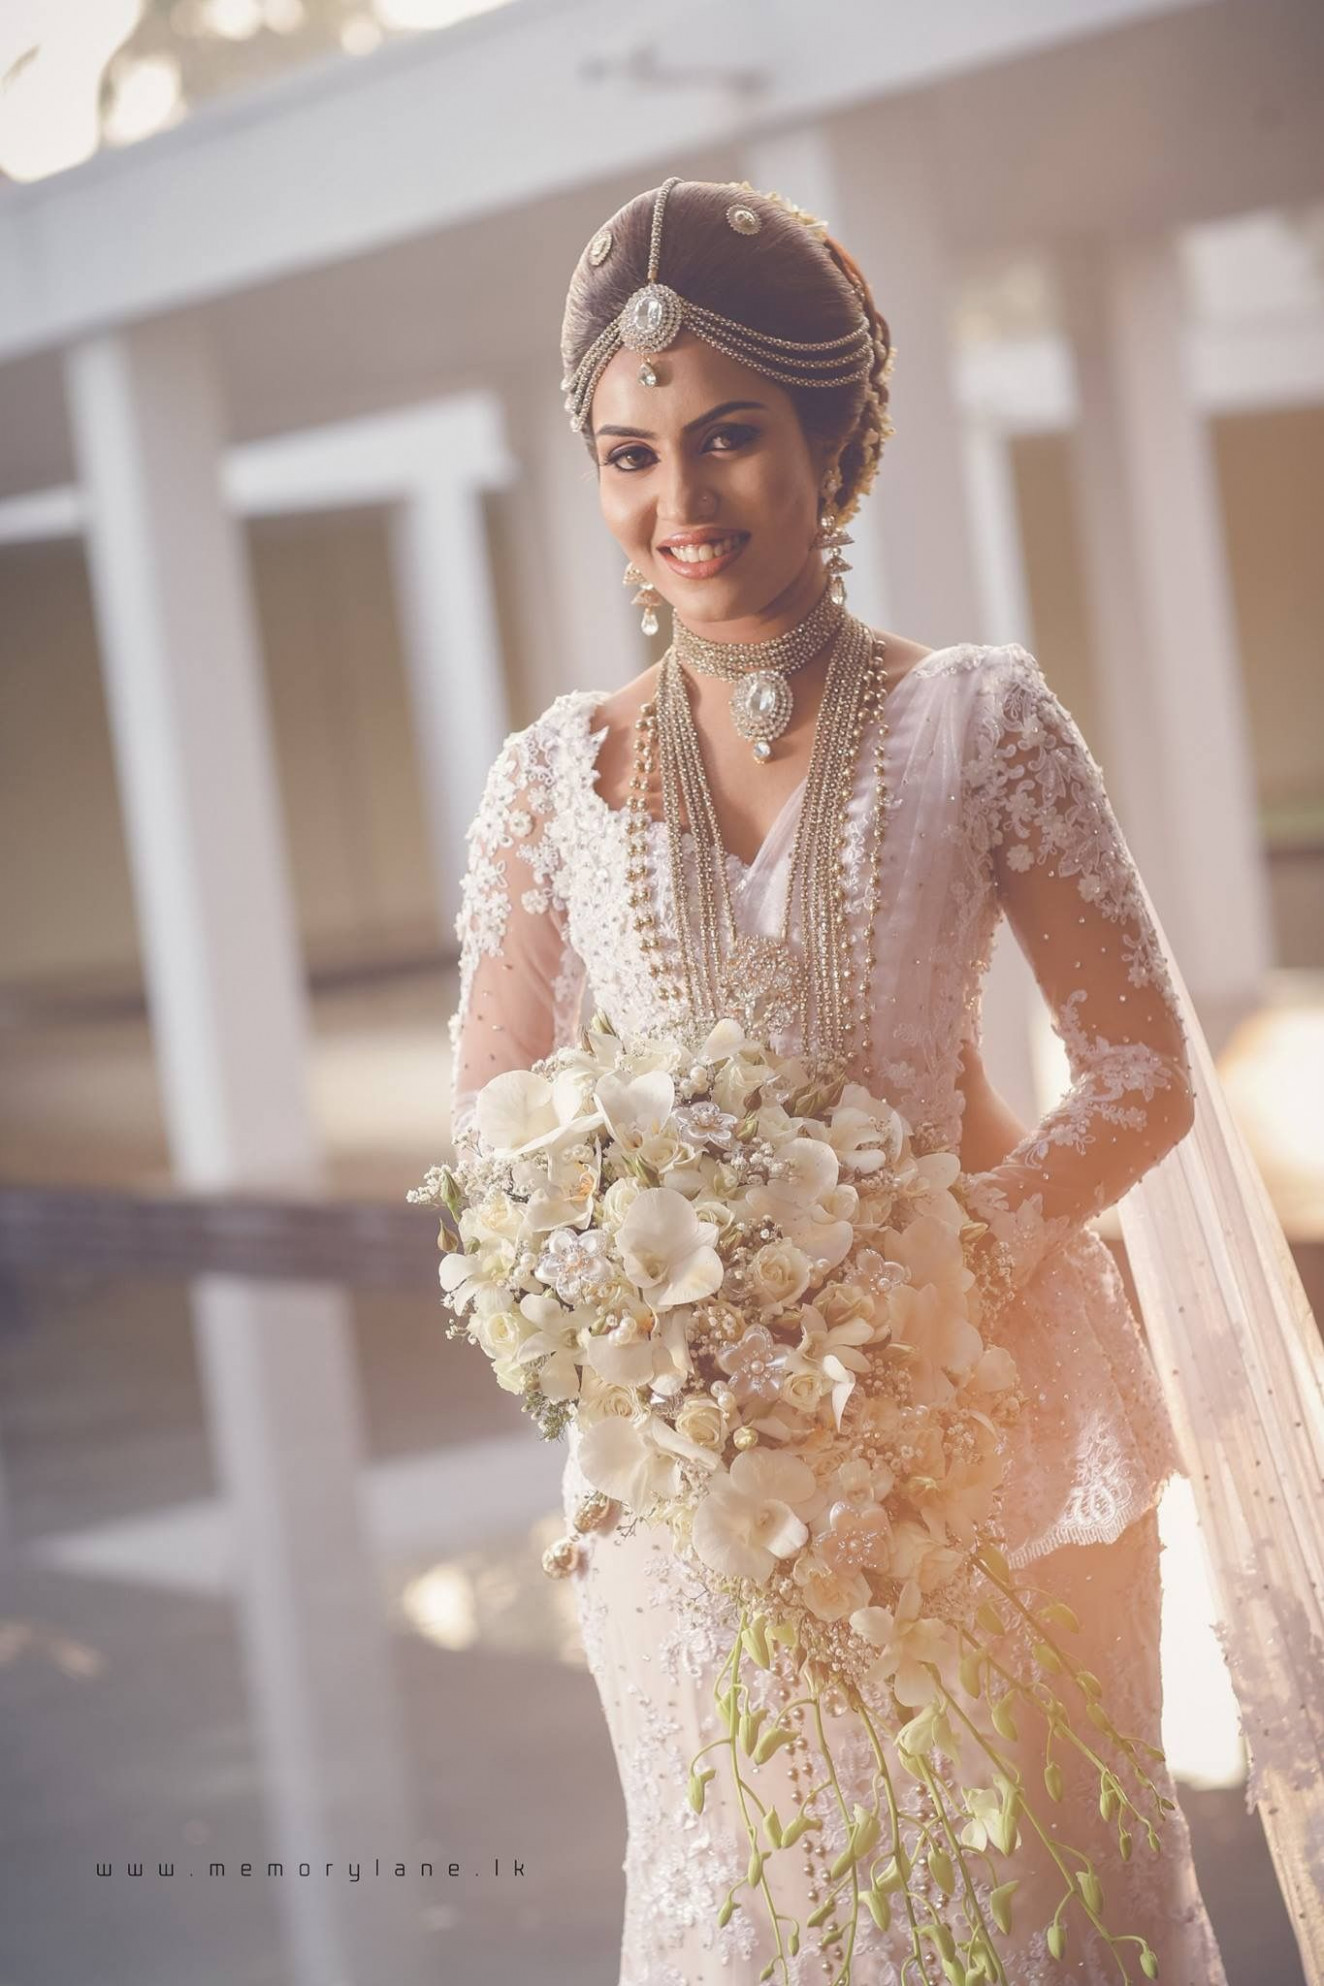 For the bride who wants to wear white!! That reduces the